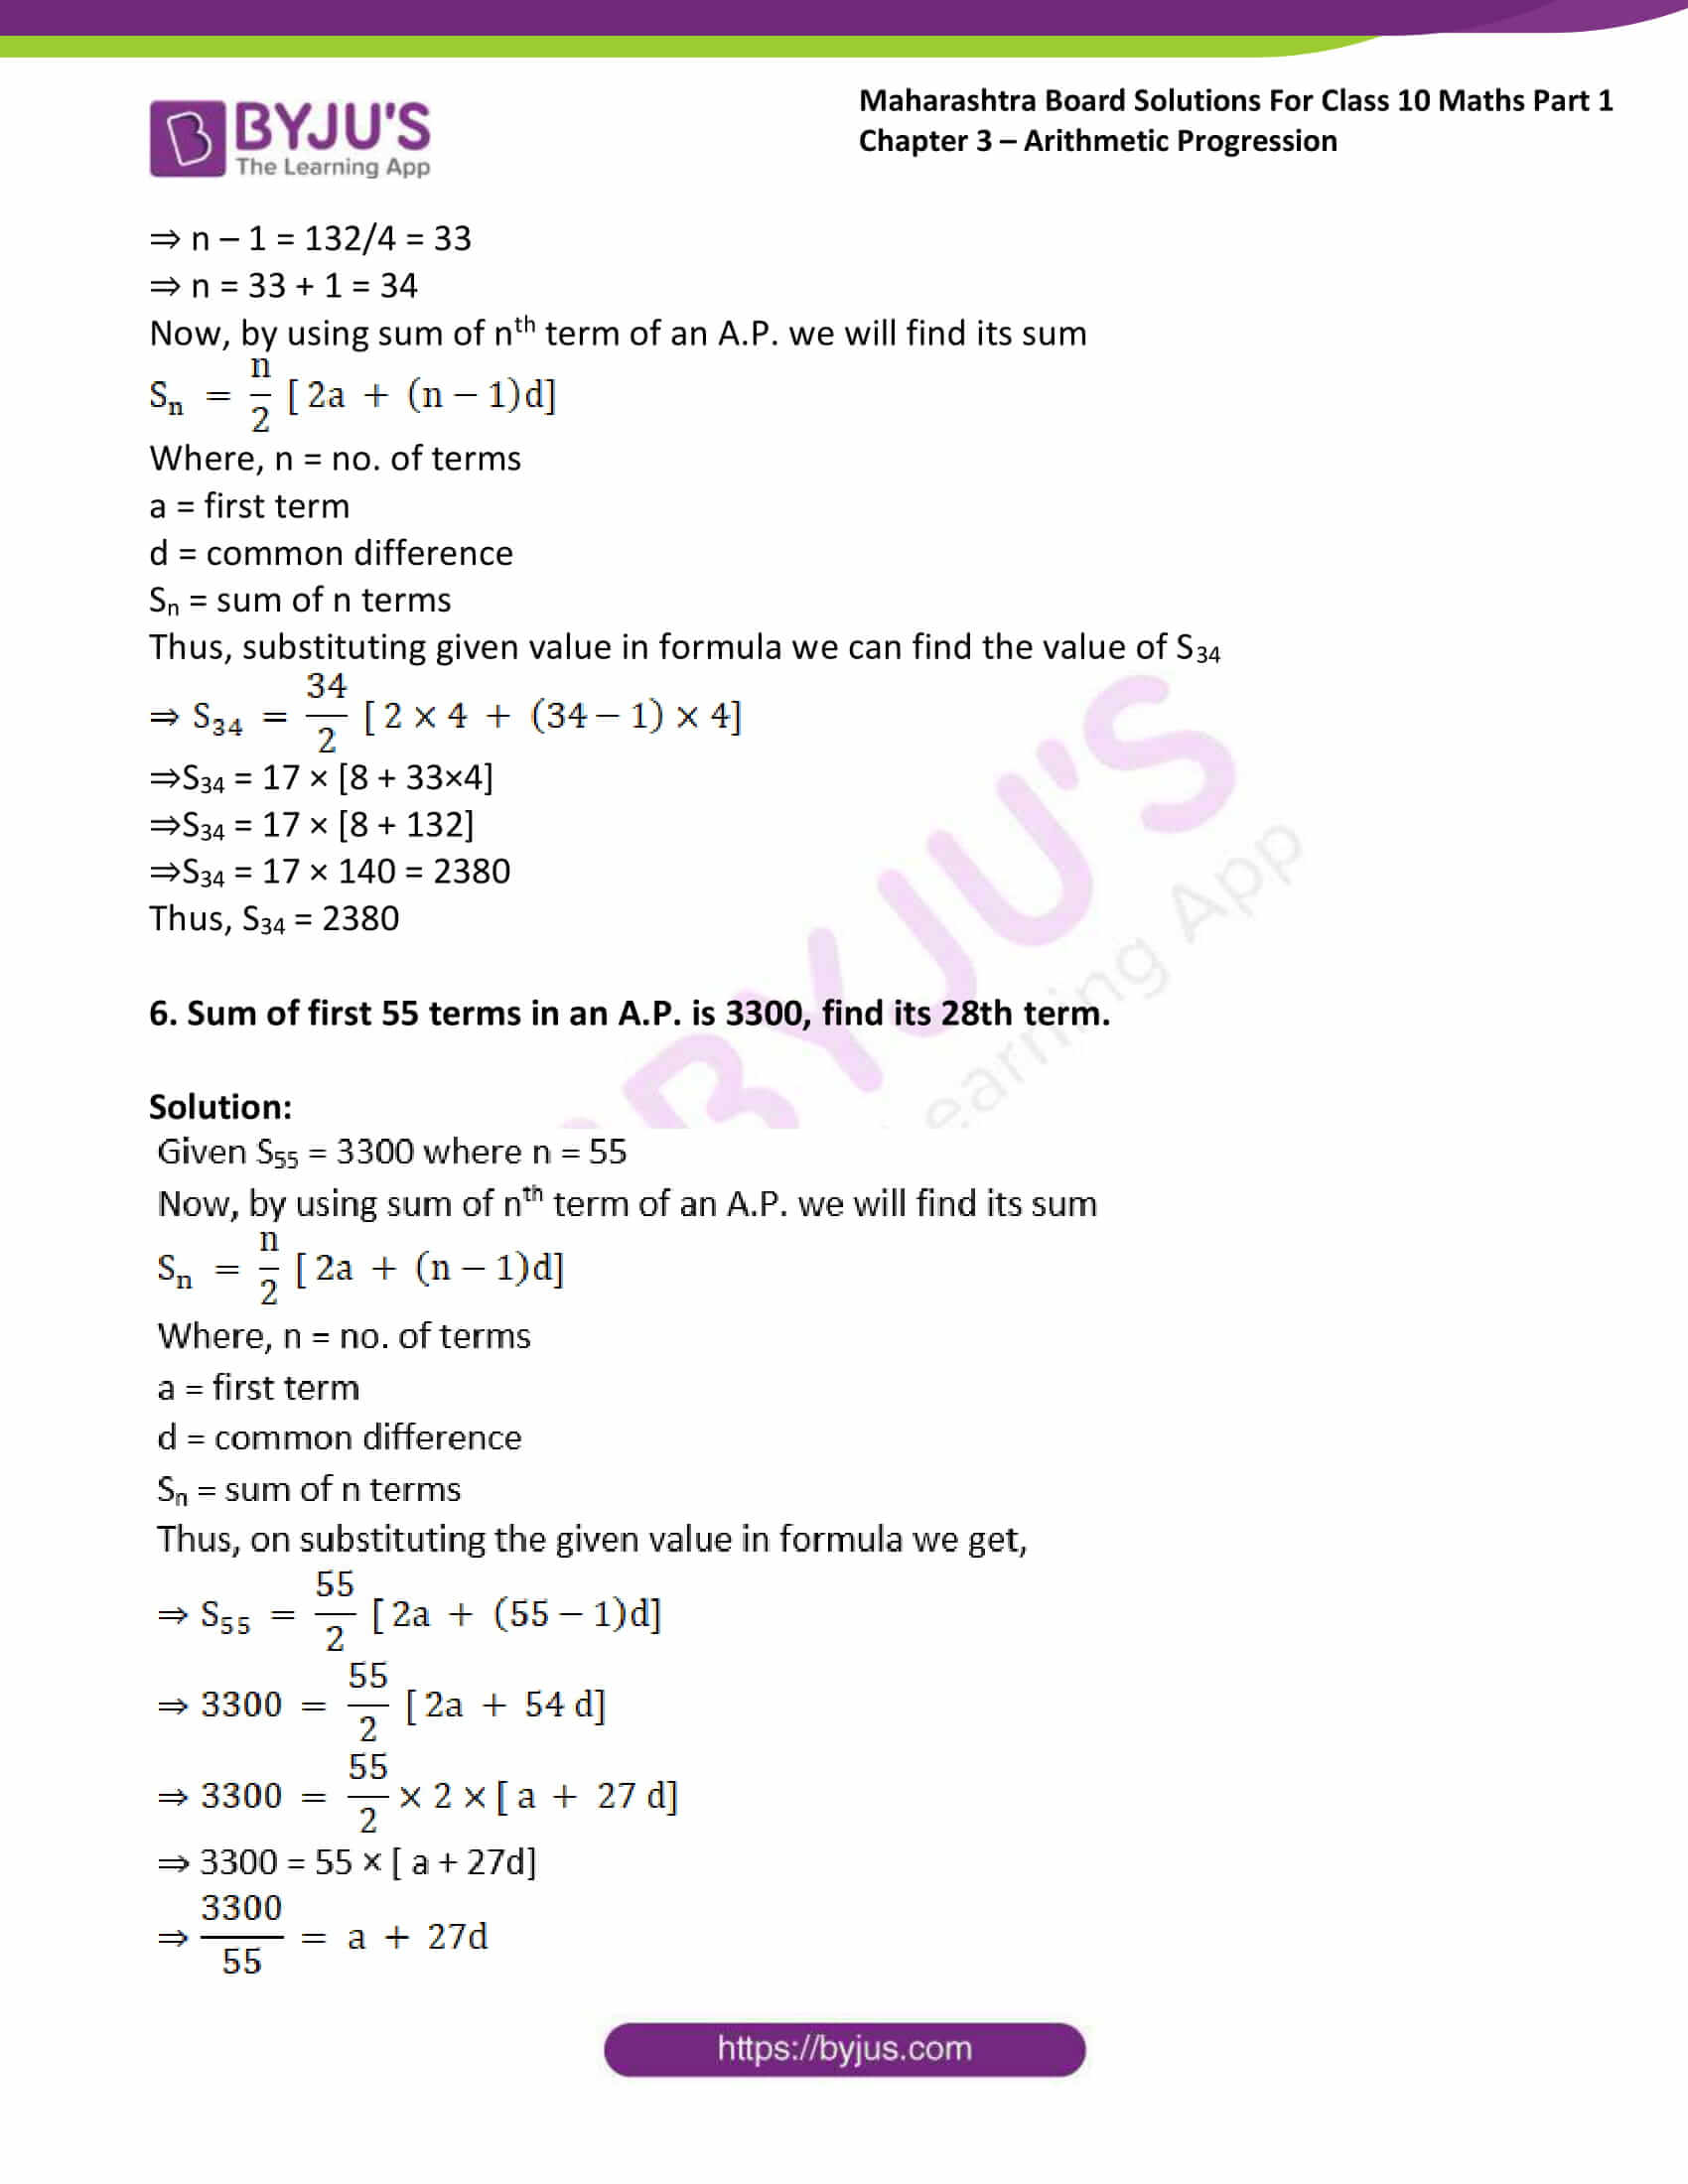 msbshse solutions class 10 maths part 1 chapter 3 20